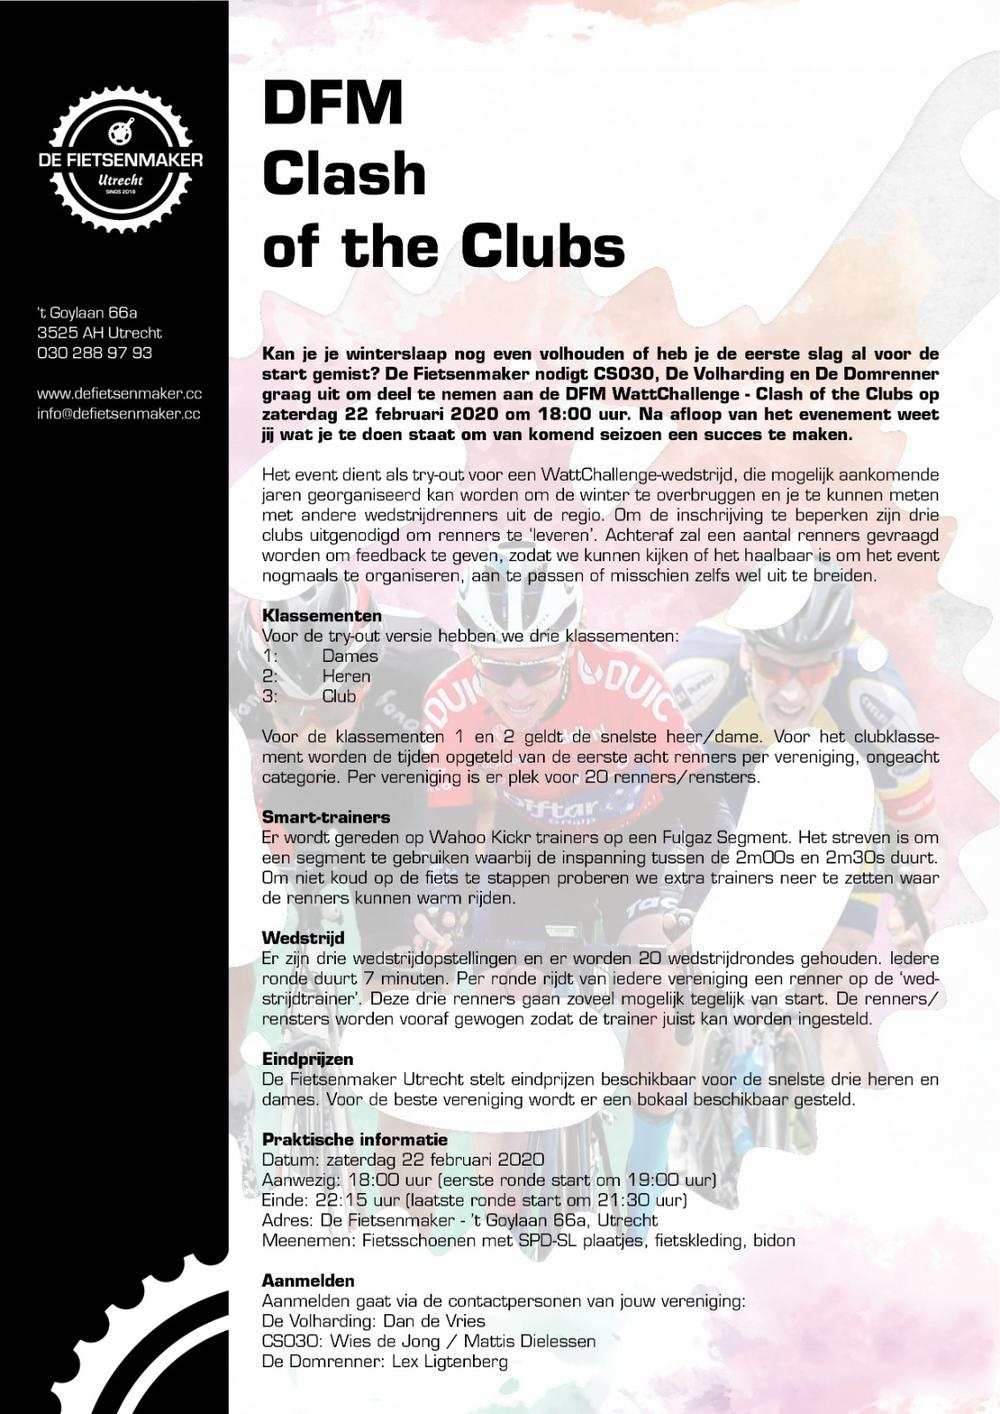 Clash of the Clubs